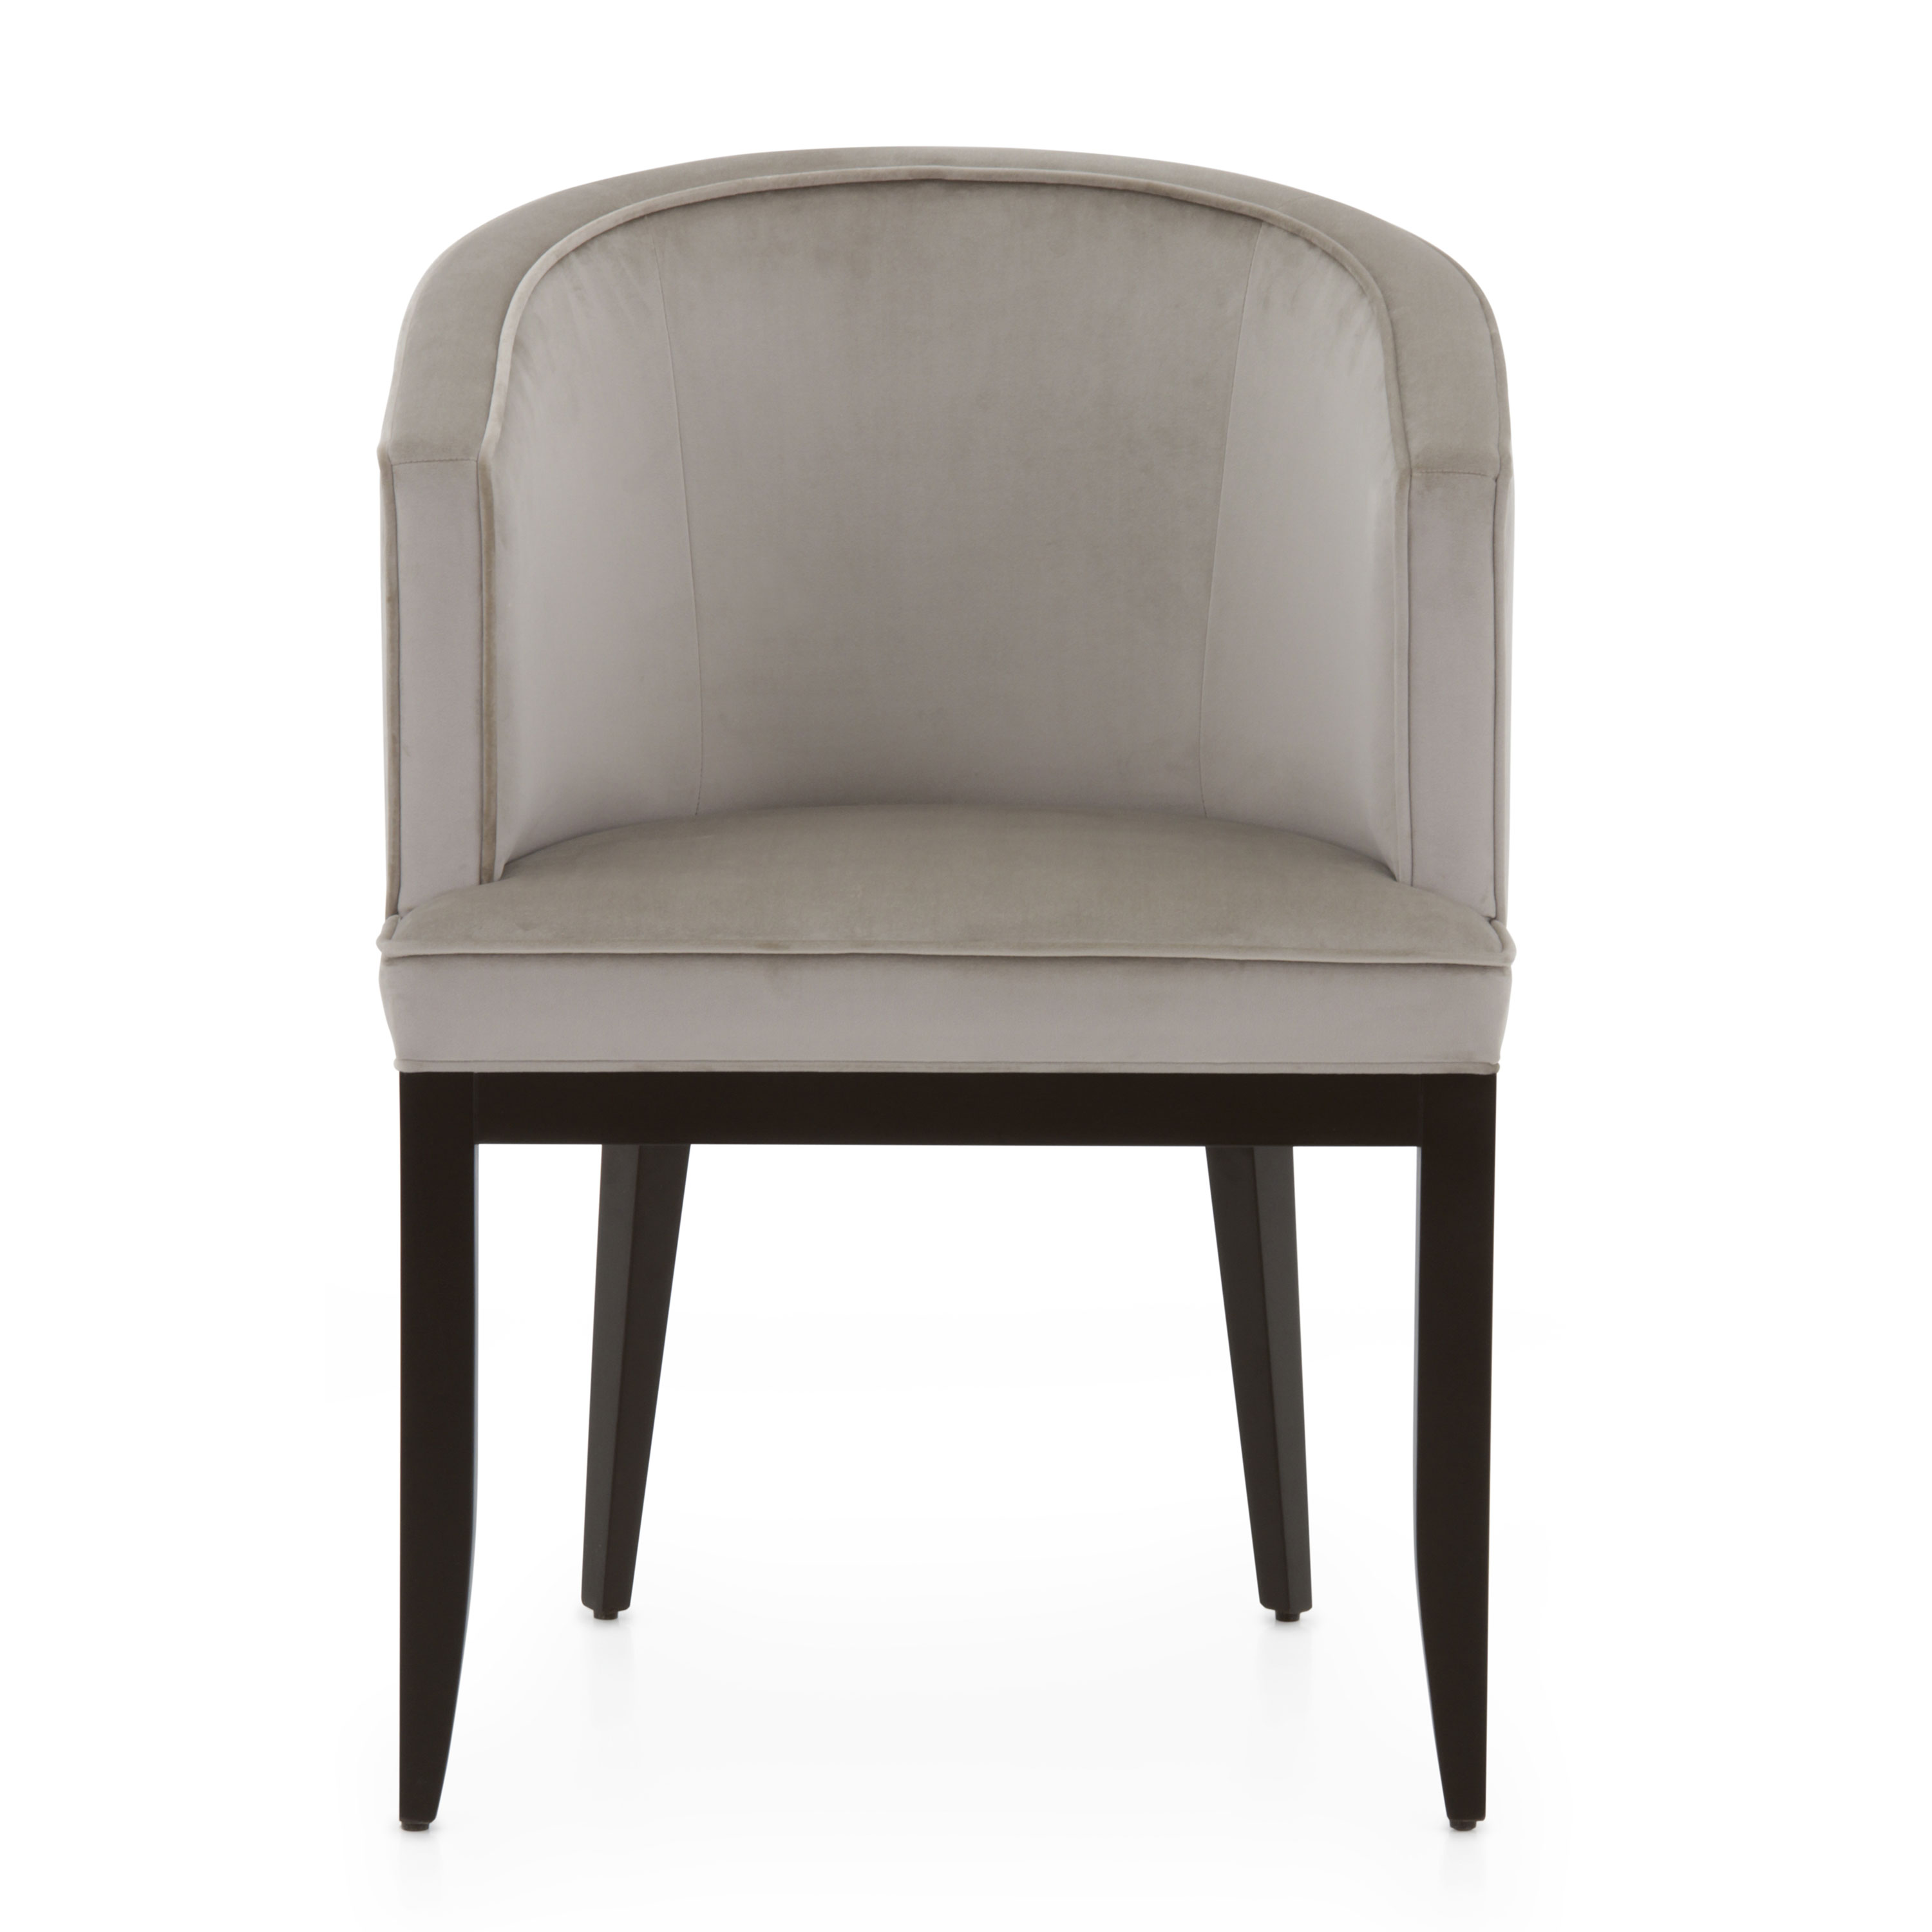 Fabulous Contemporary Style Tub Chair Made Of Wood Dalila Sevensedie Ibusinesslaw Wood Chair Design Ideas Ibusinesslaworg